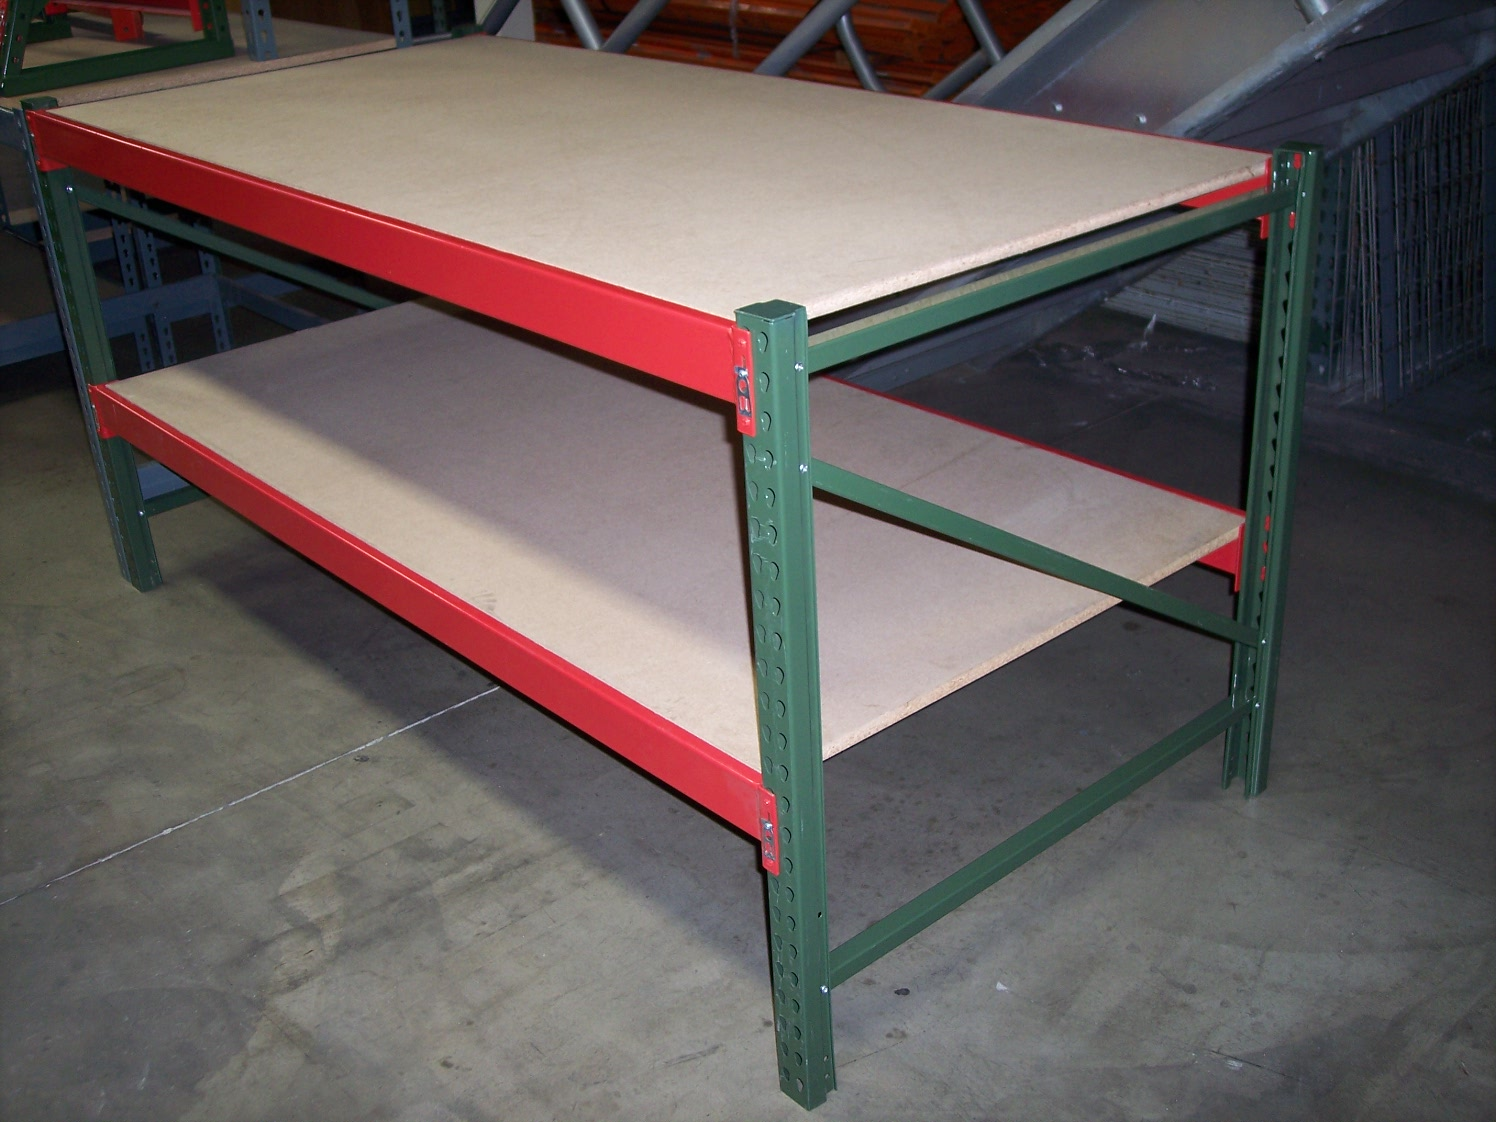 Work Benches All American Rack Company Warehouse Pallet Rack Shelving